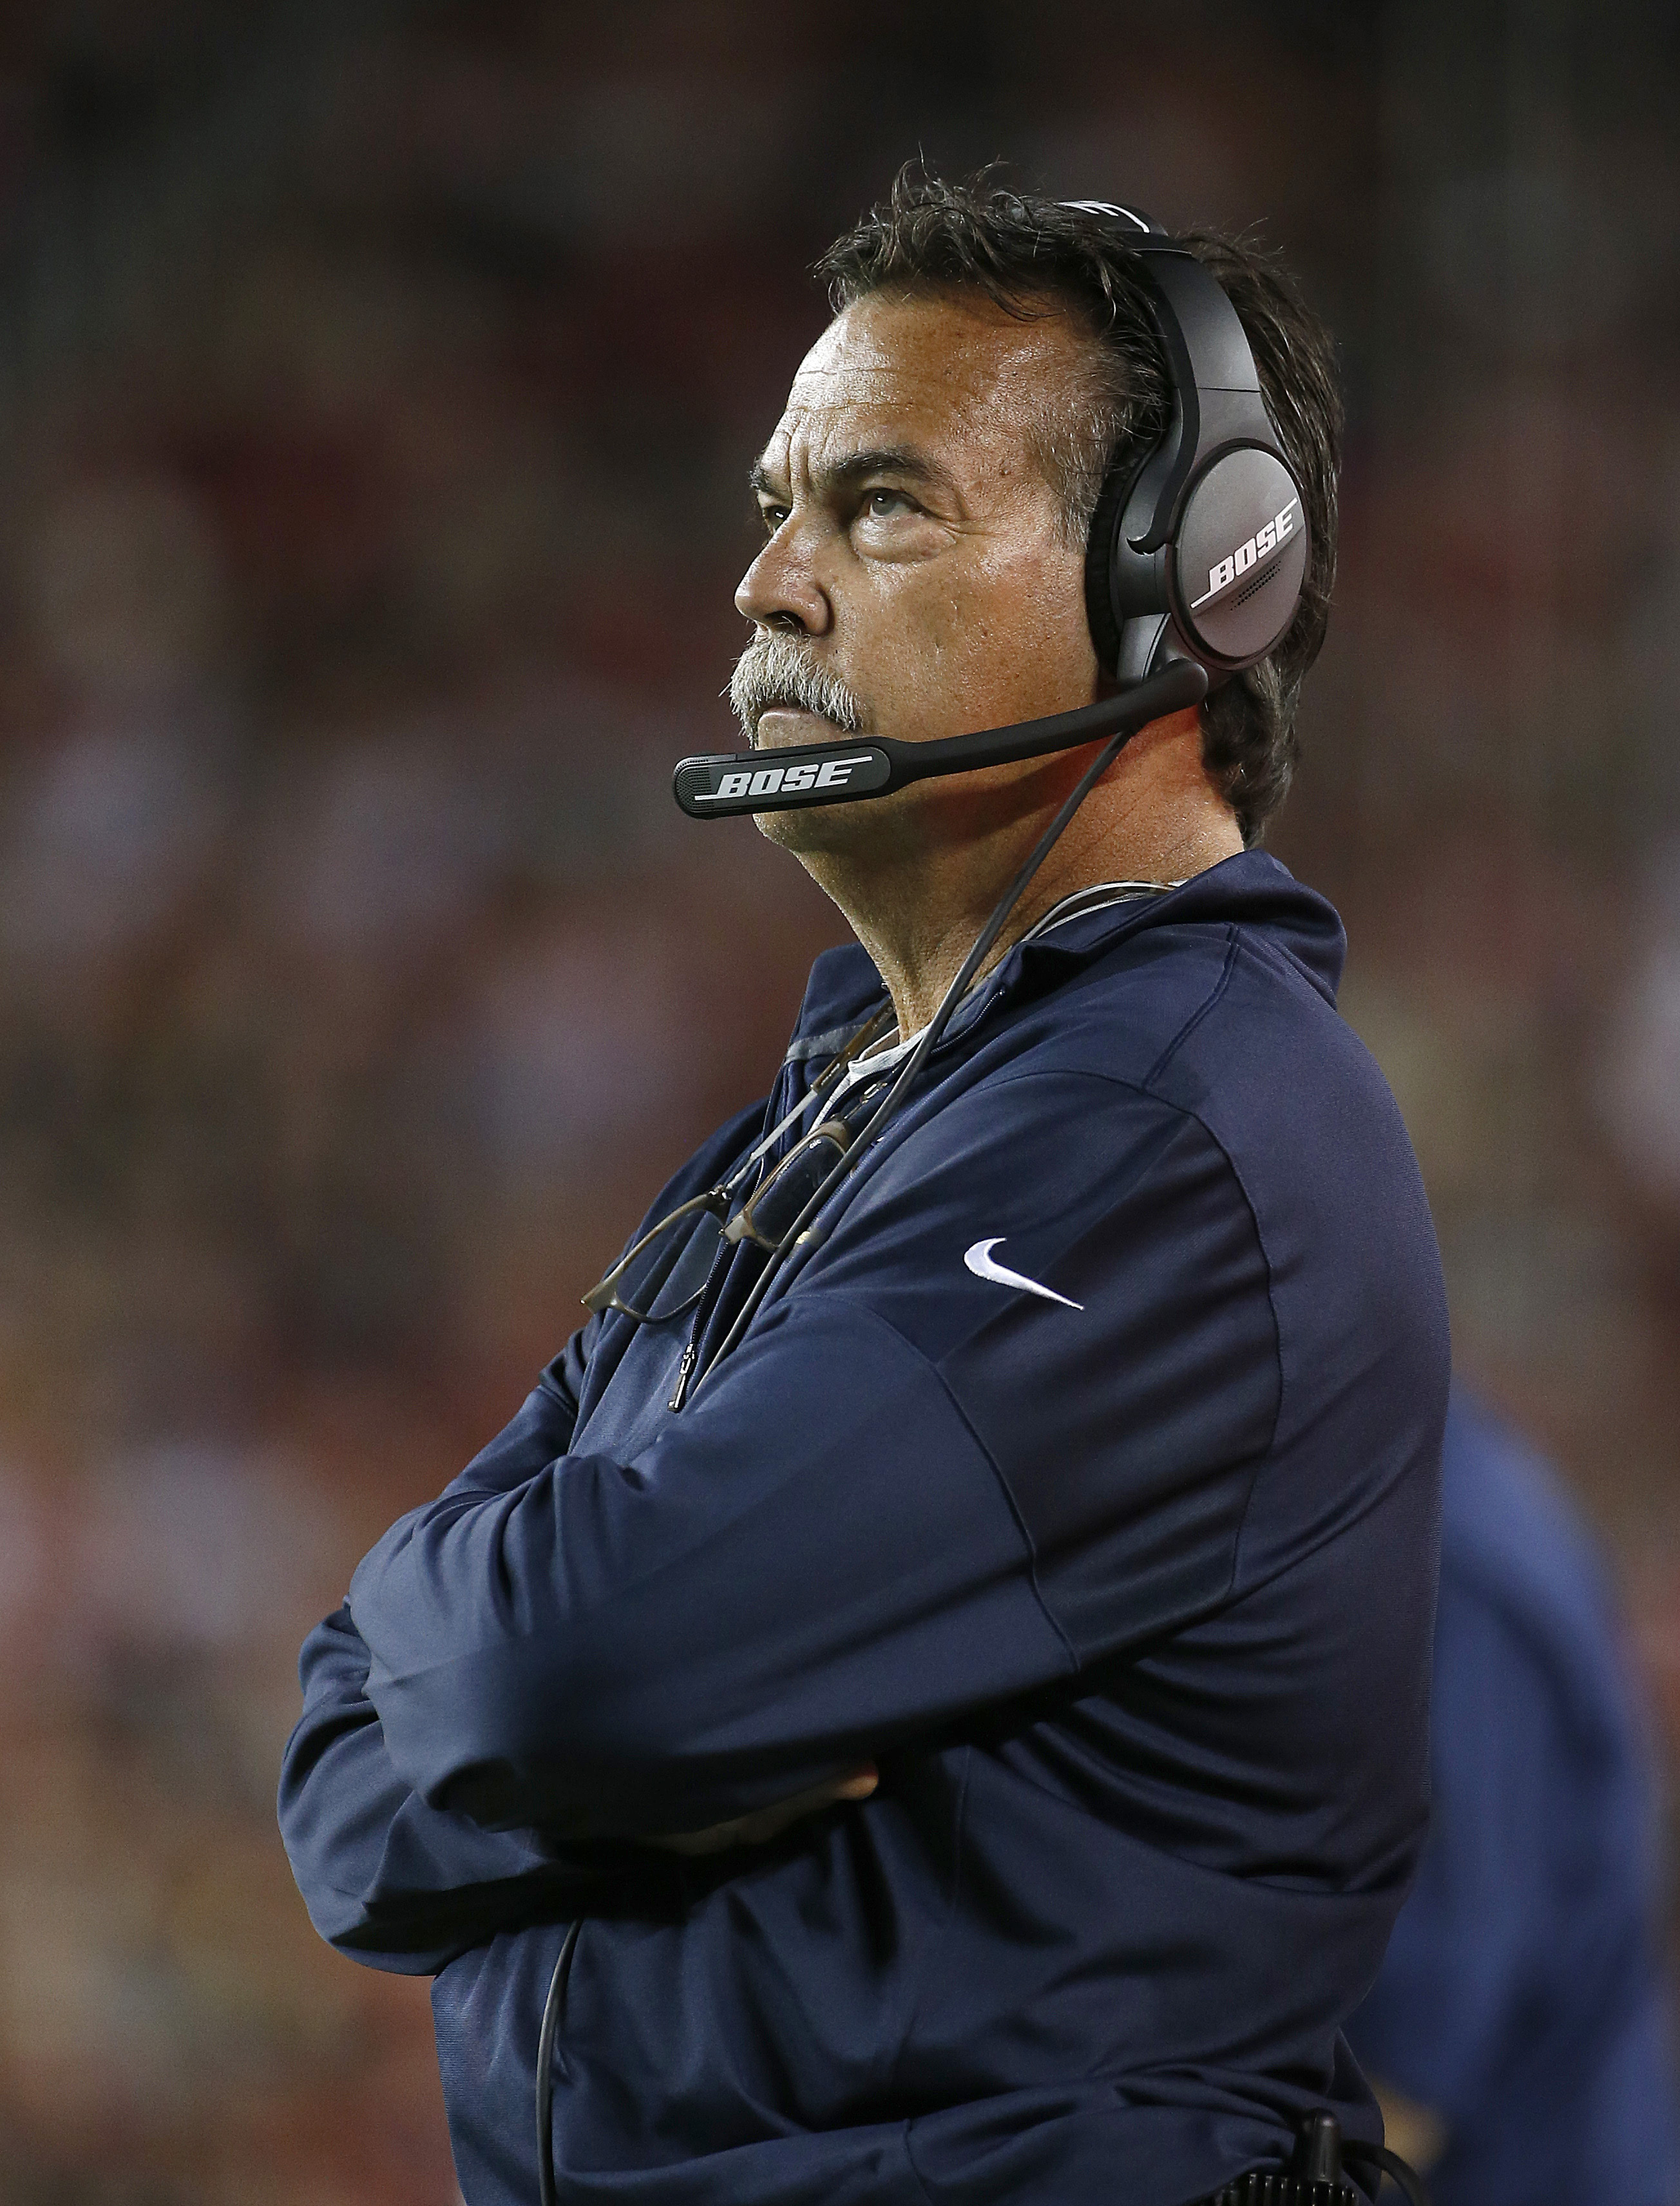 Los Angeles Rams head coach Jeff Fisher watches during the second half of an NFL football game against the San Francisco 49ers in Santa Clara, Calif., Monday, Sept. 12, 2016. (AP Photo/Tony Avelar)